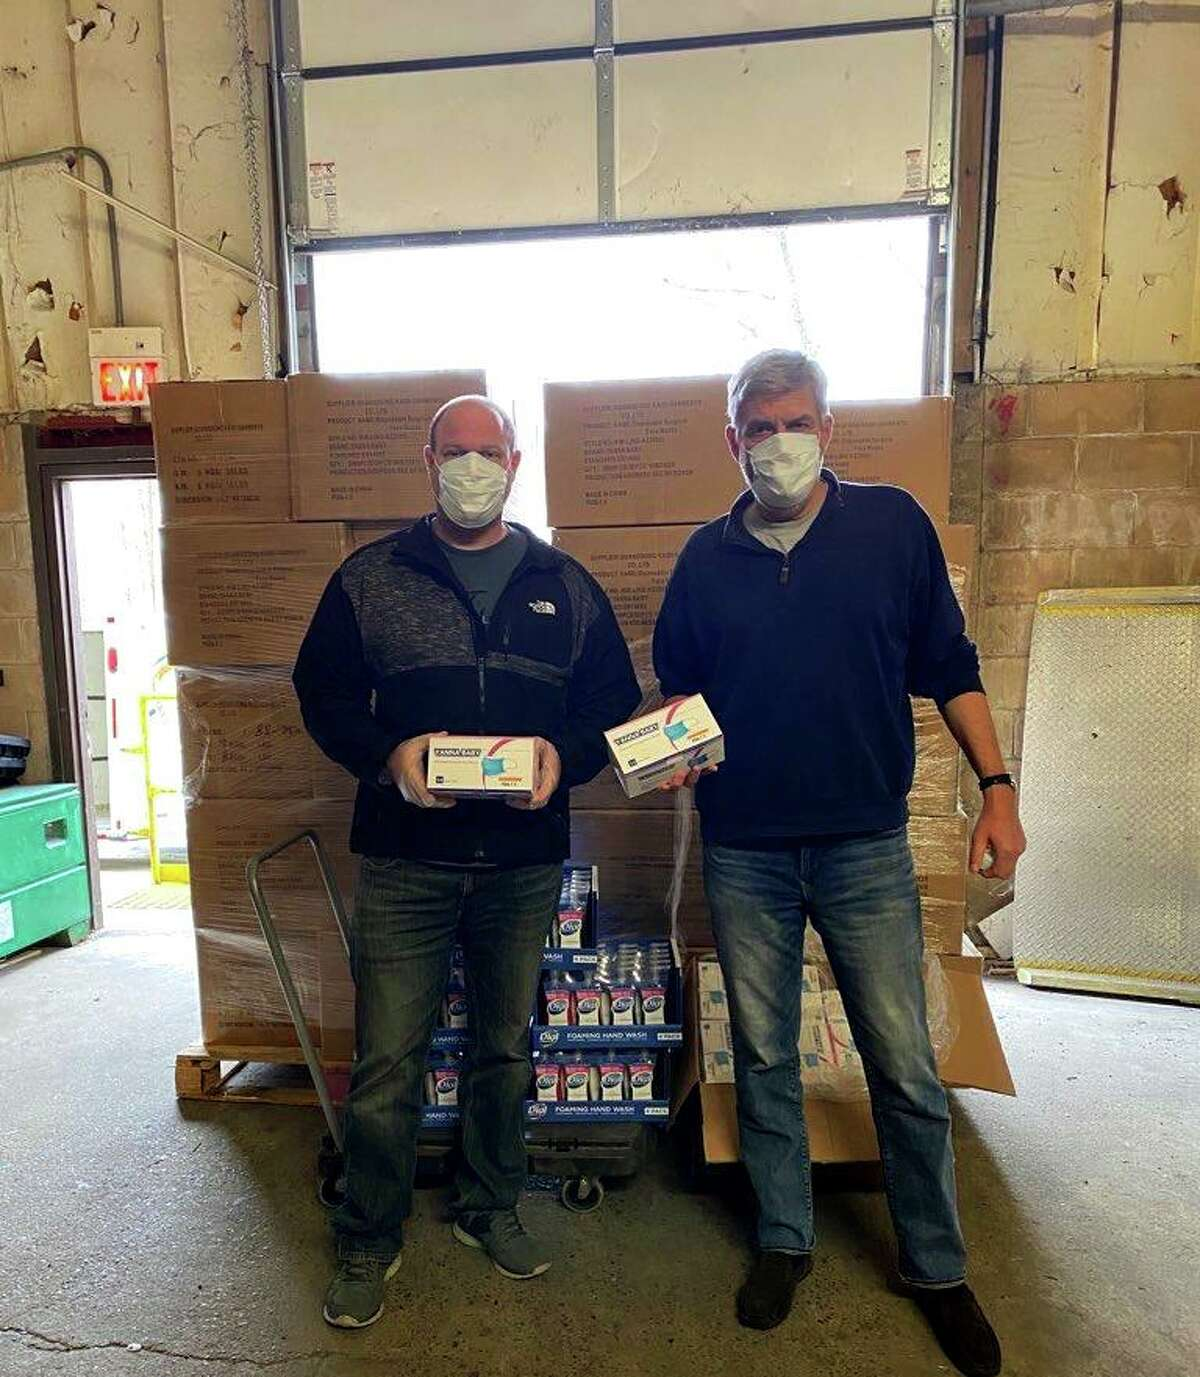 The first deliveries of masks for Masks for Heroes was made possible by (l-r) Stamford Firefighter Patrick Sasser and Masks for Heroes Founder Bob Stefanowski.